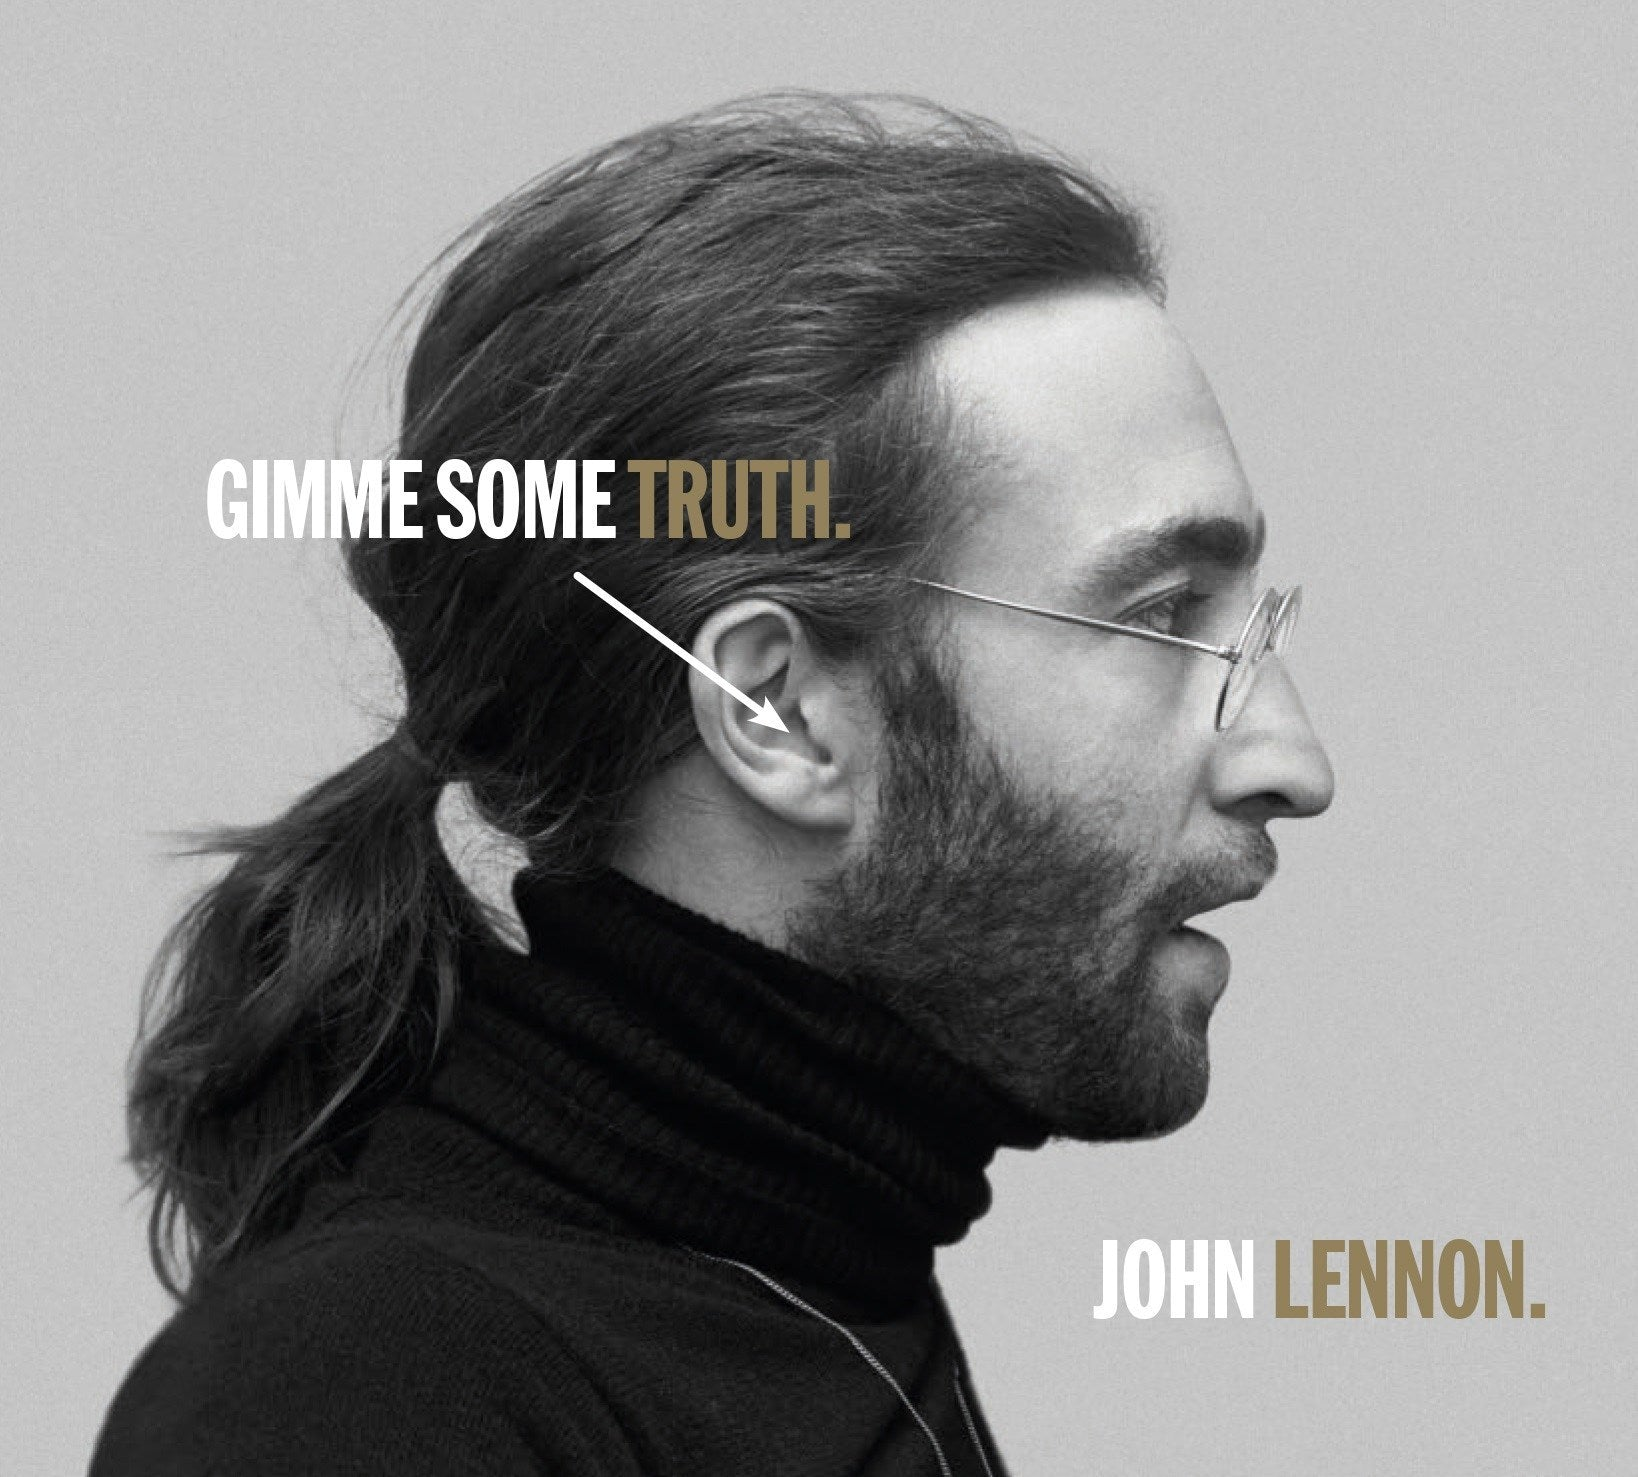 JOHN LENNON - GIMME SOME TRUTH - VINYL 2LP - Wah Wah Records